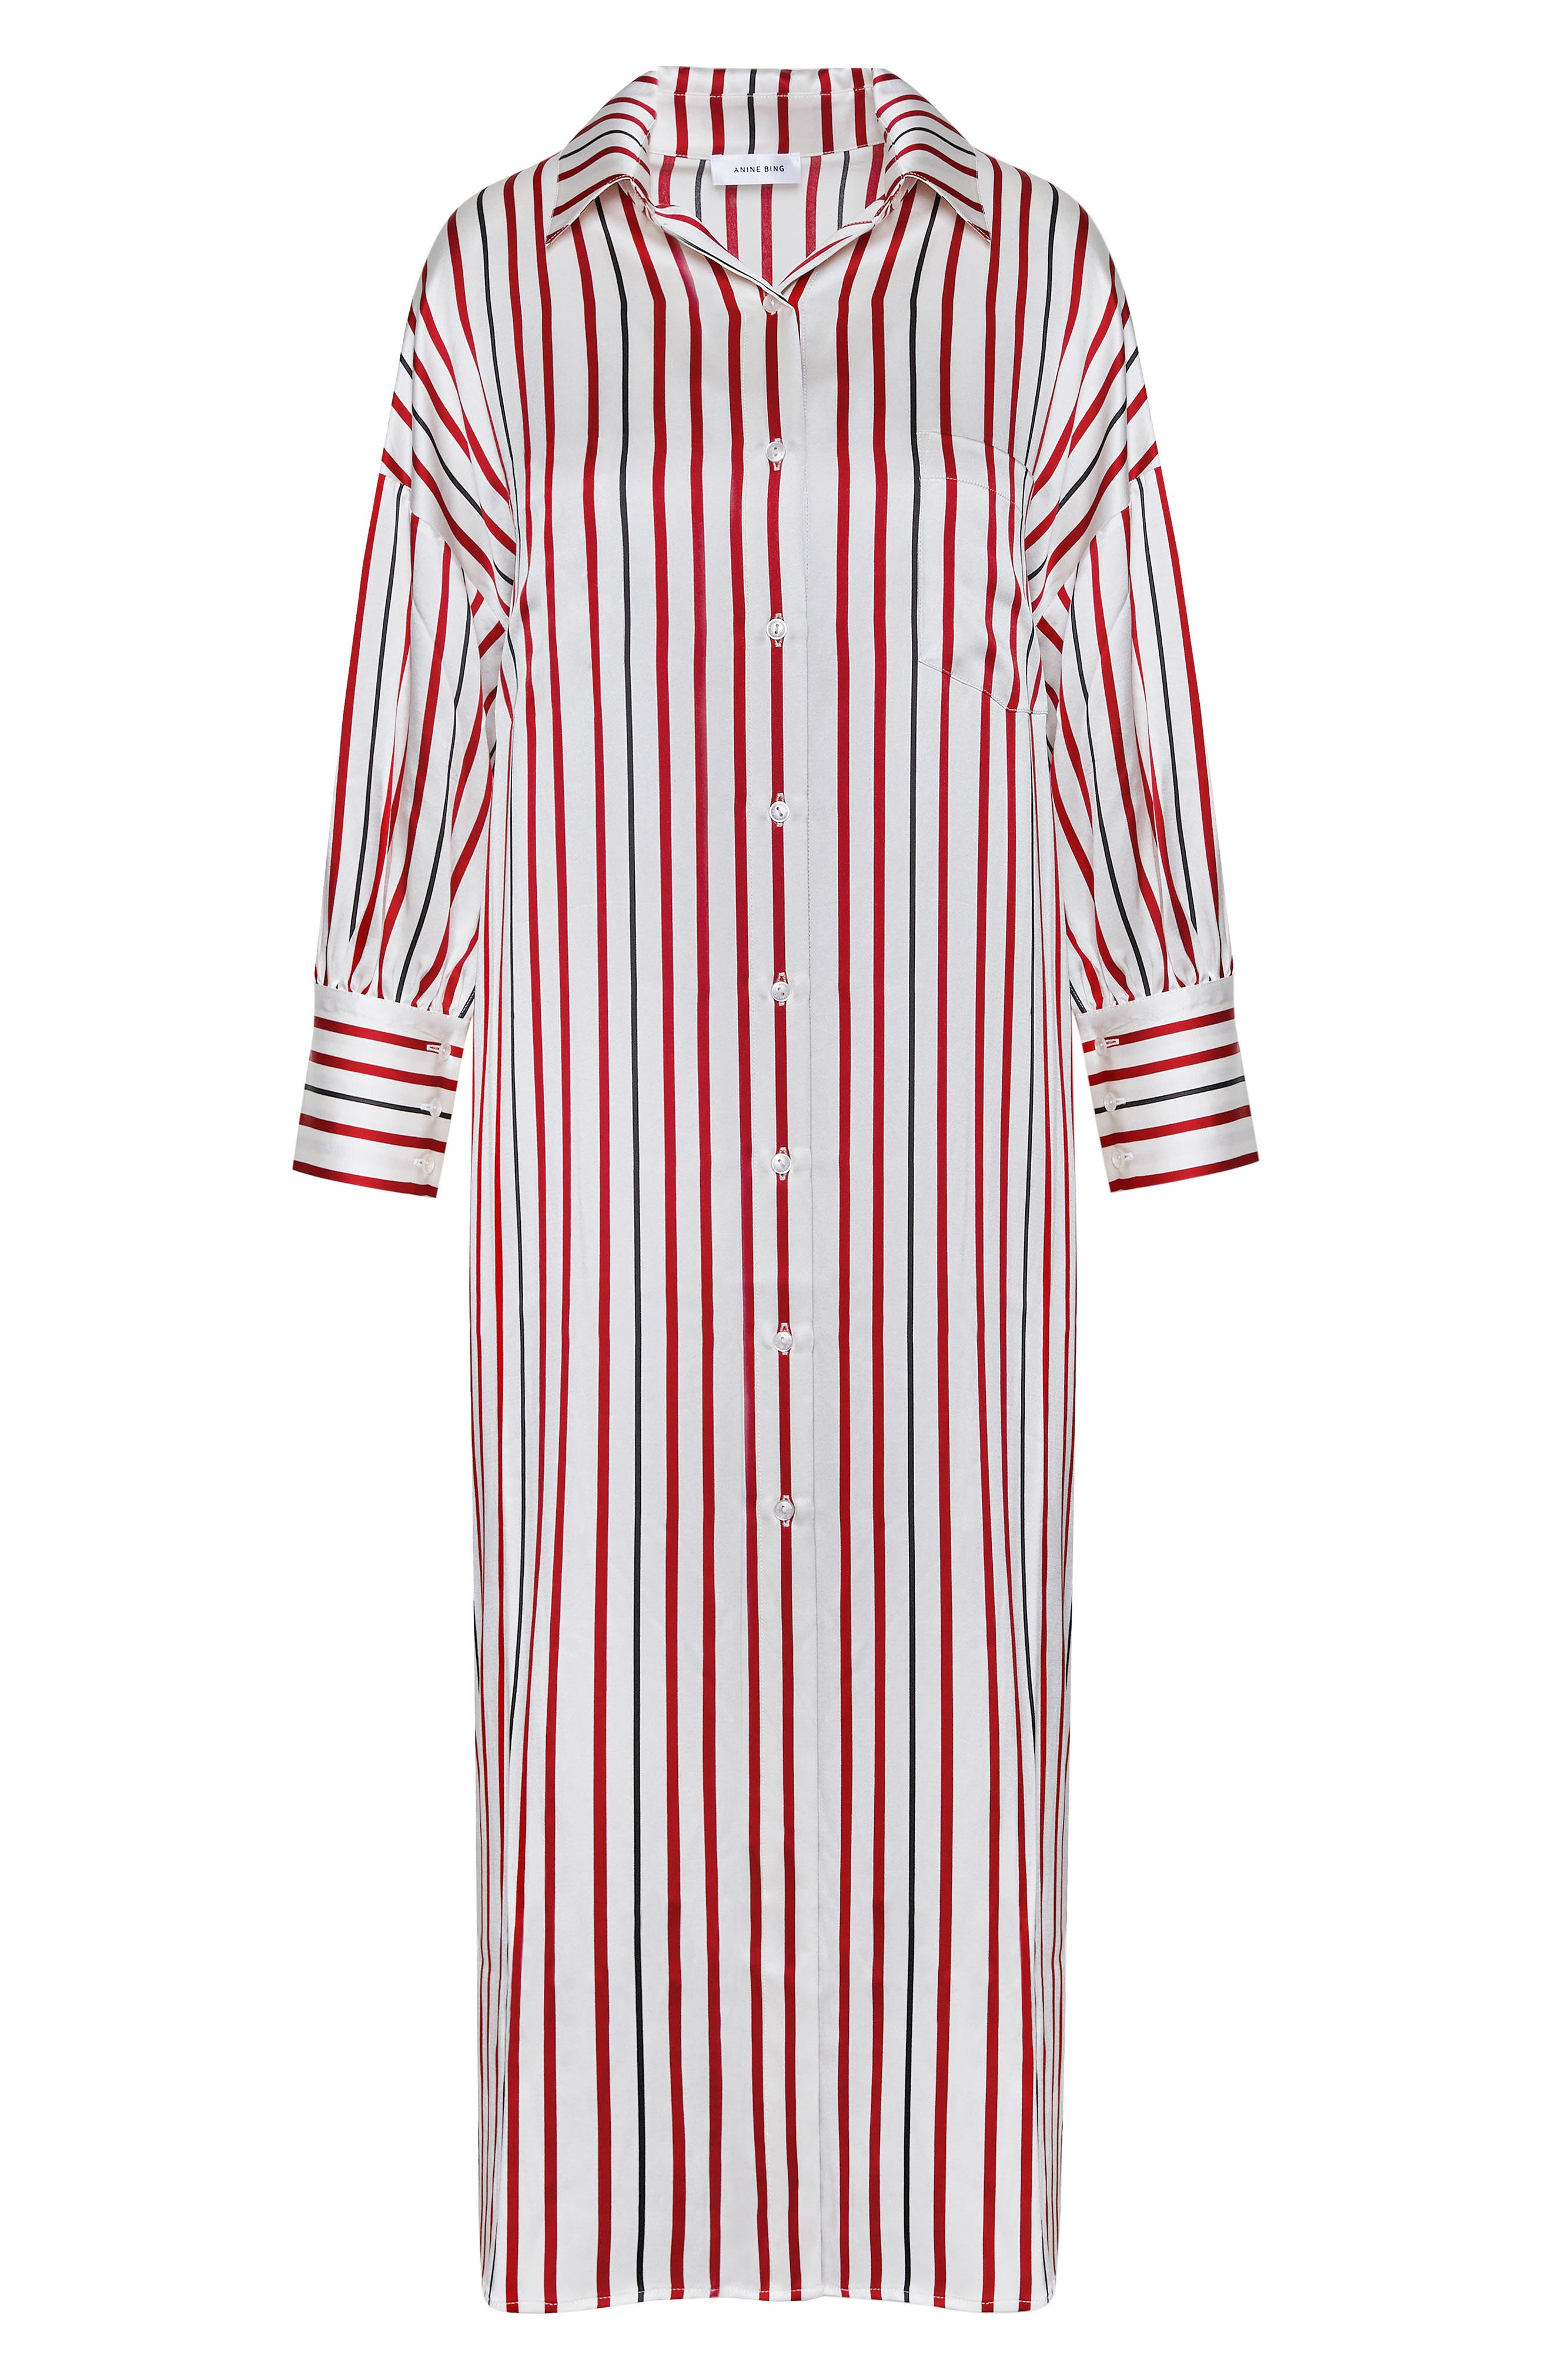 Milly Silk Shirtdress,                             Alternate thumbnail 3, color,                             MULTI